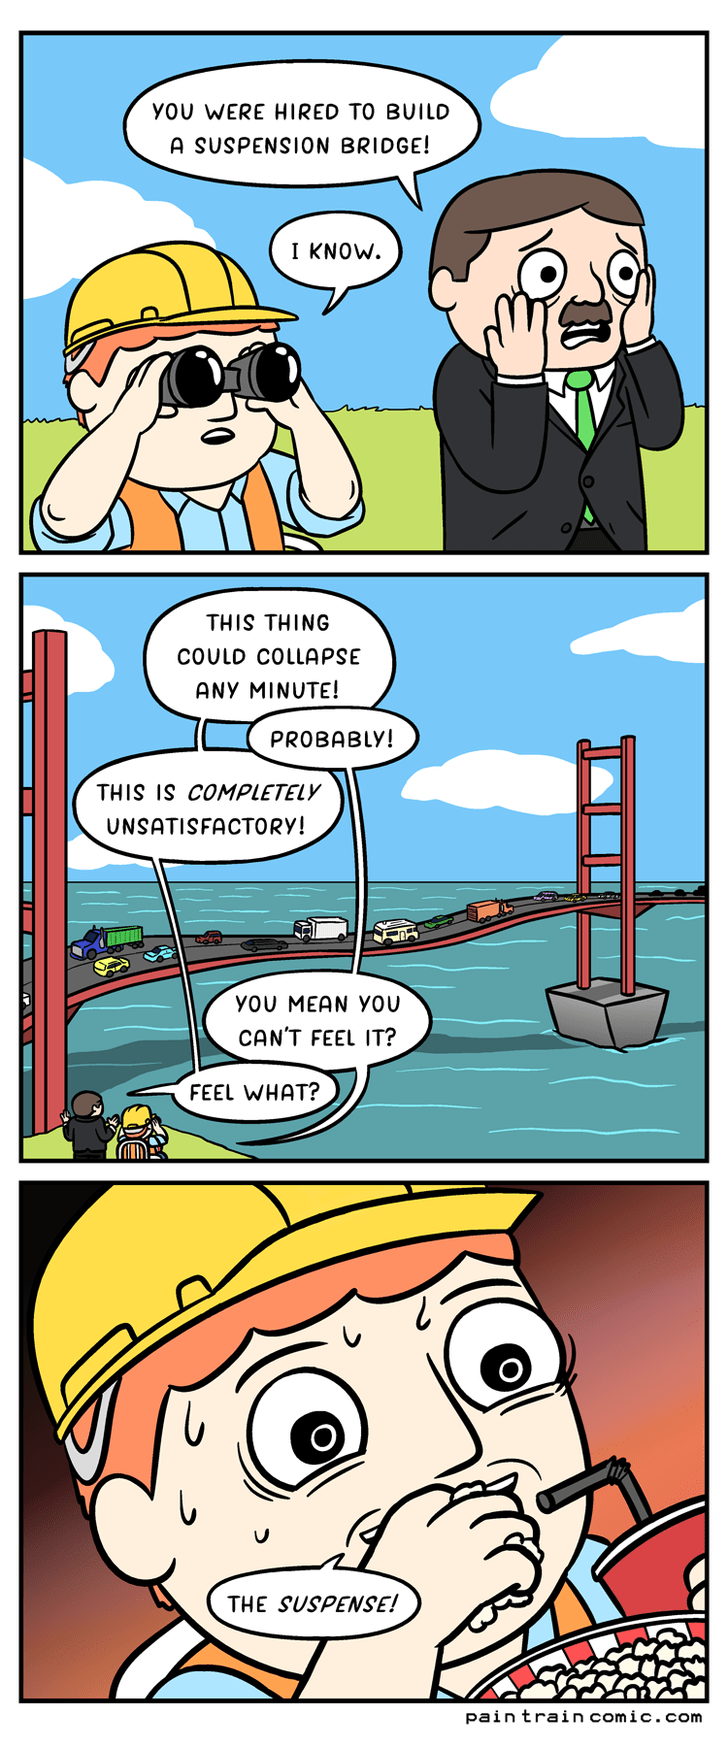 Comics - yOU WERE HIRED TO BUILD A SUSPENSION BRIDGE! I KNOW THIS THING COULD COLLAPSE ANY MINUTE! PROBABLY! THIS IS COMPLETELY UNSATISFACTORY! yOU MEAN YOu CAN'T FEEL IT? FEEL WHAT? THE SUSPENSE! pain train comic.com